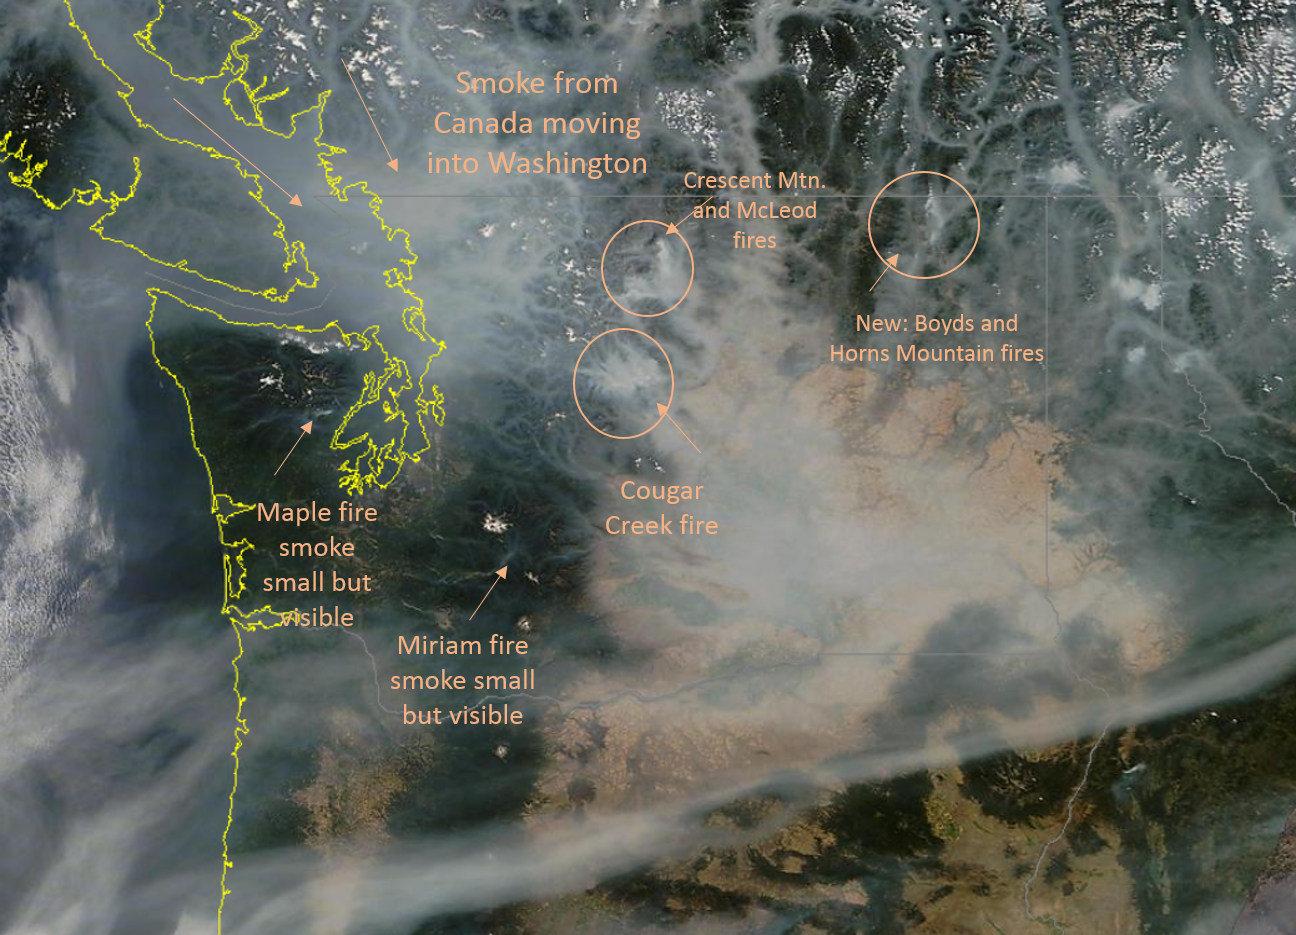 the most to poor air quality around the state satellite photo from about 2pm this afternoon original large image can be seen here modisaug13